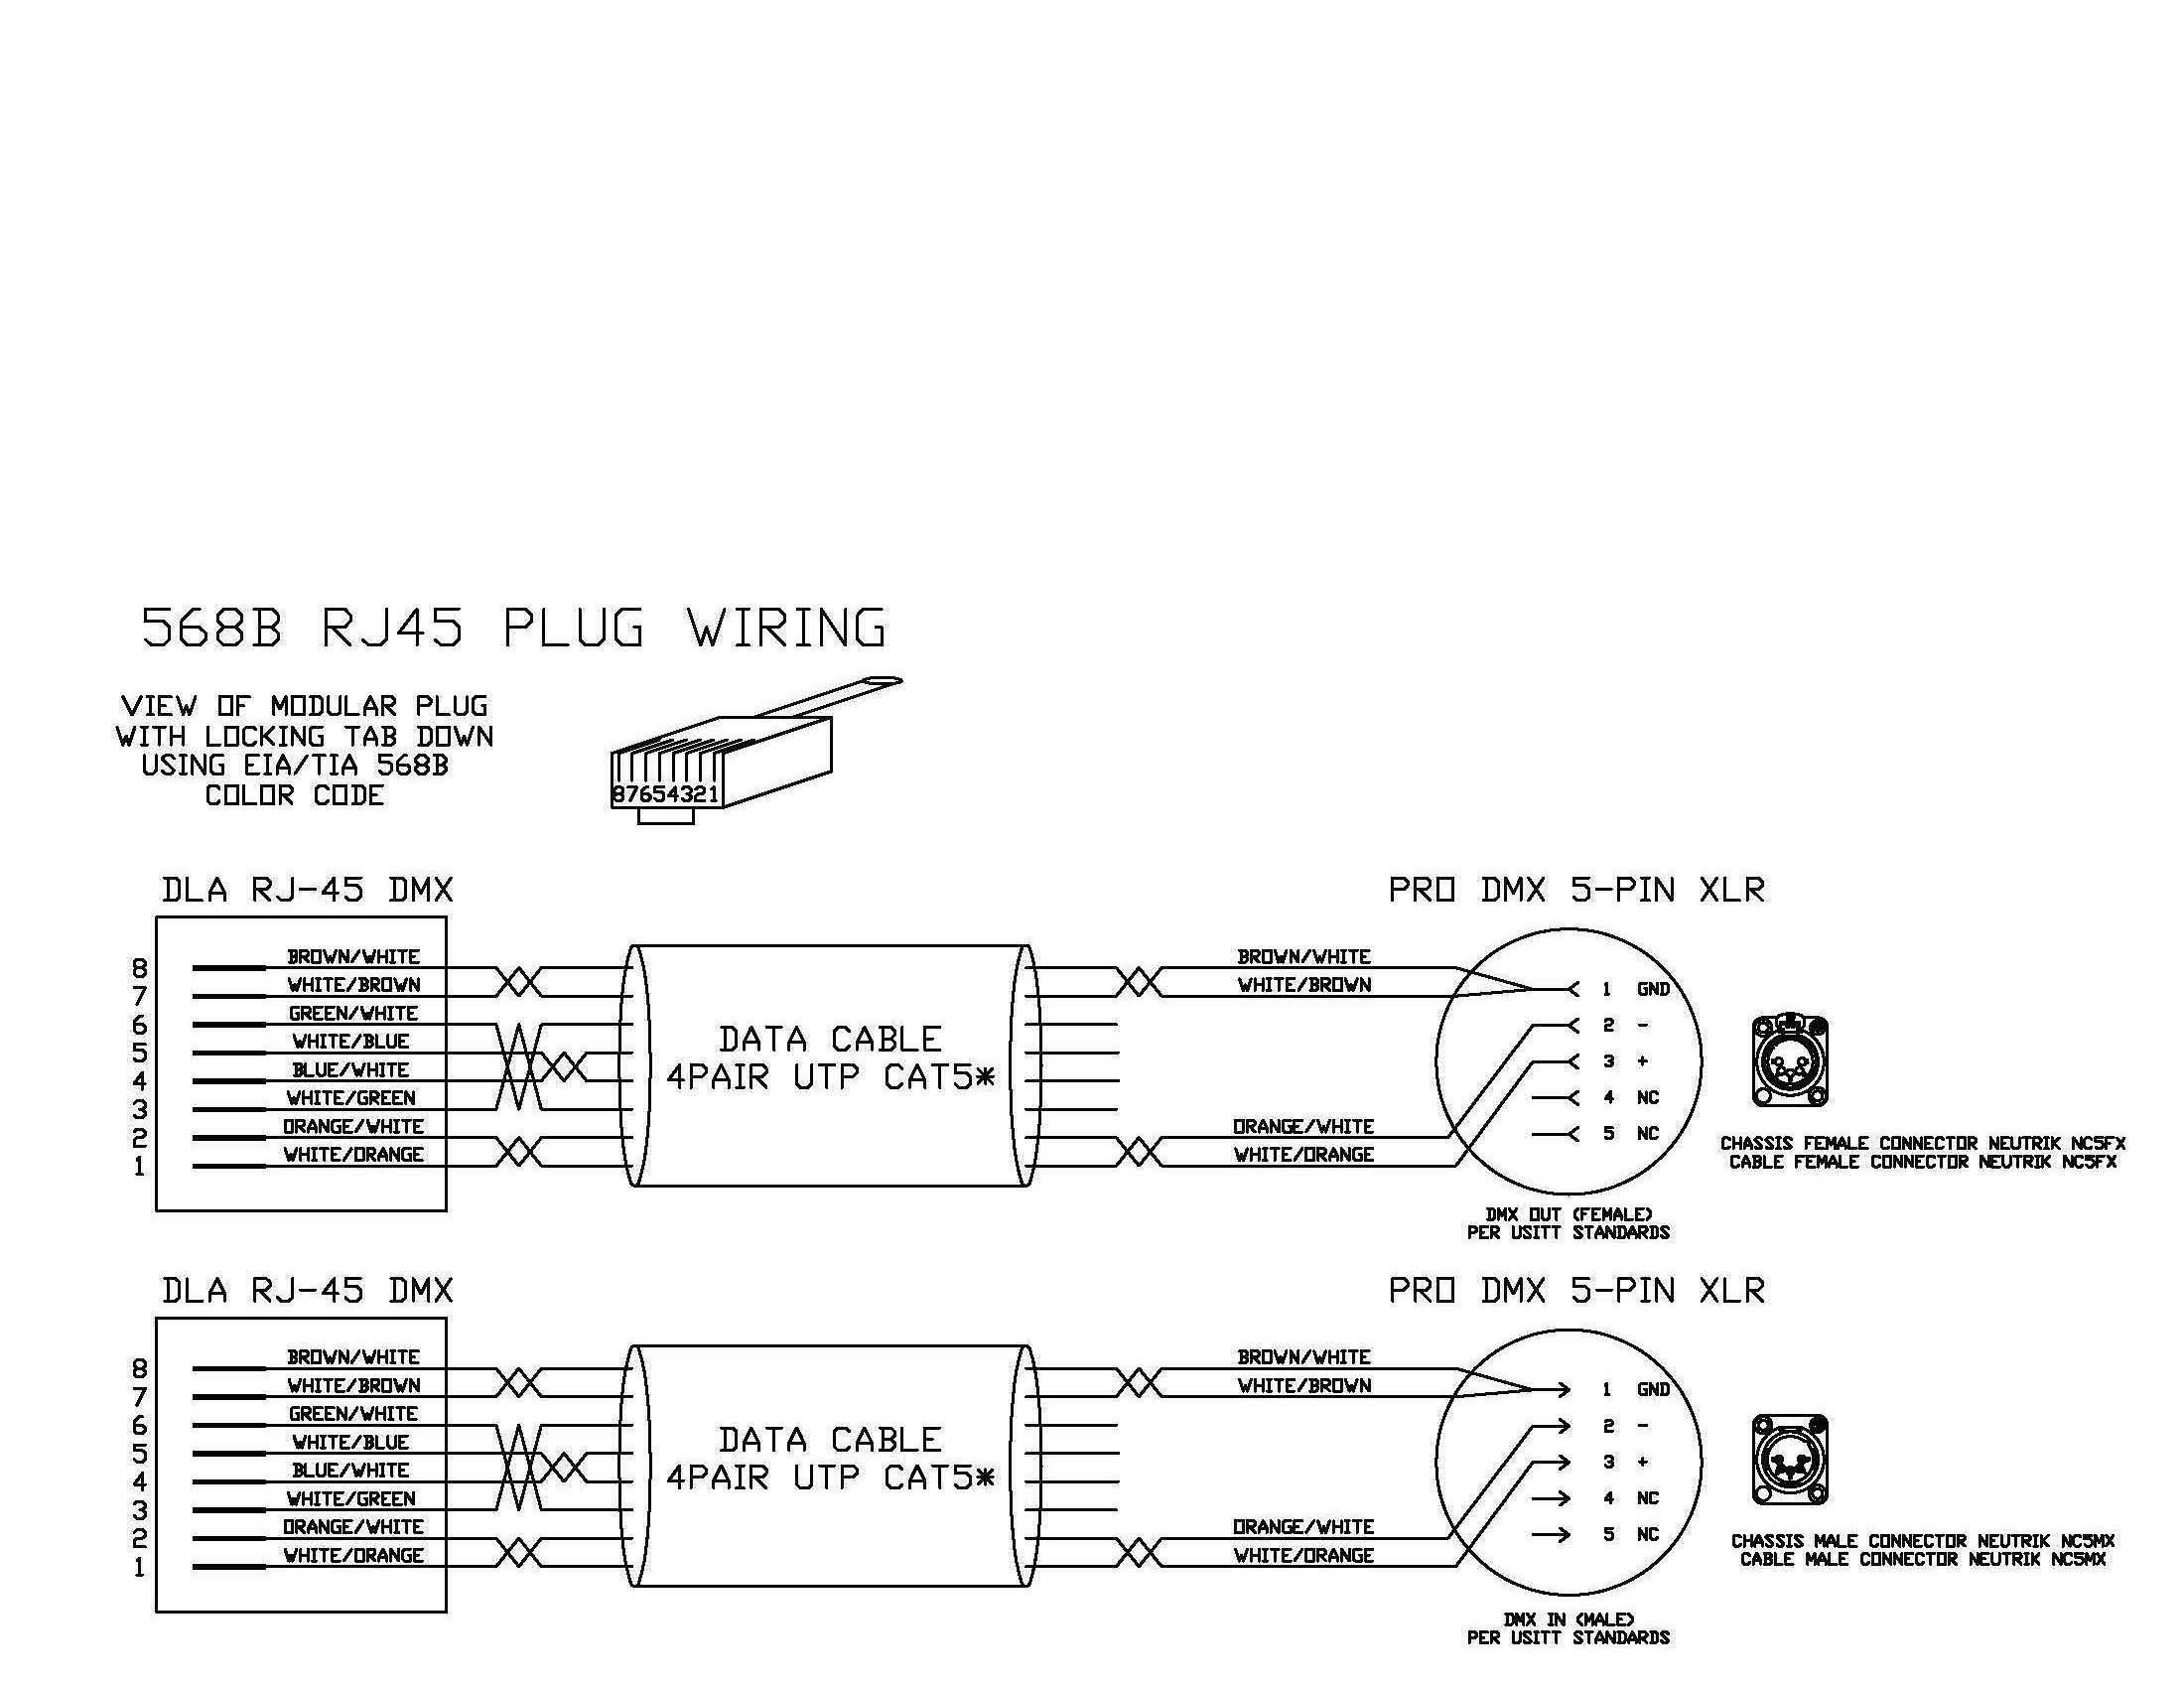 medium resolution of wiring diagram for xlr wiring diagram centrexlr to rj45 wiring diagram xlr electrical wiring diagrams cablesxlr